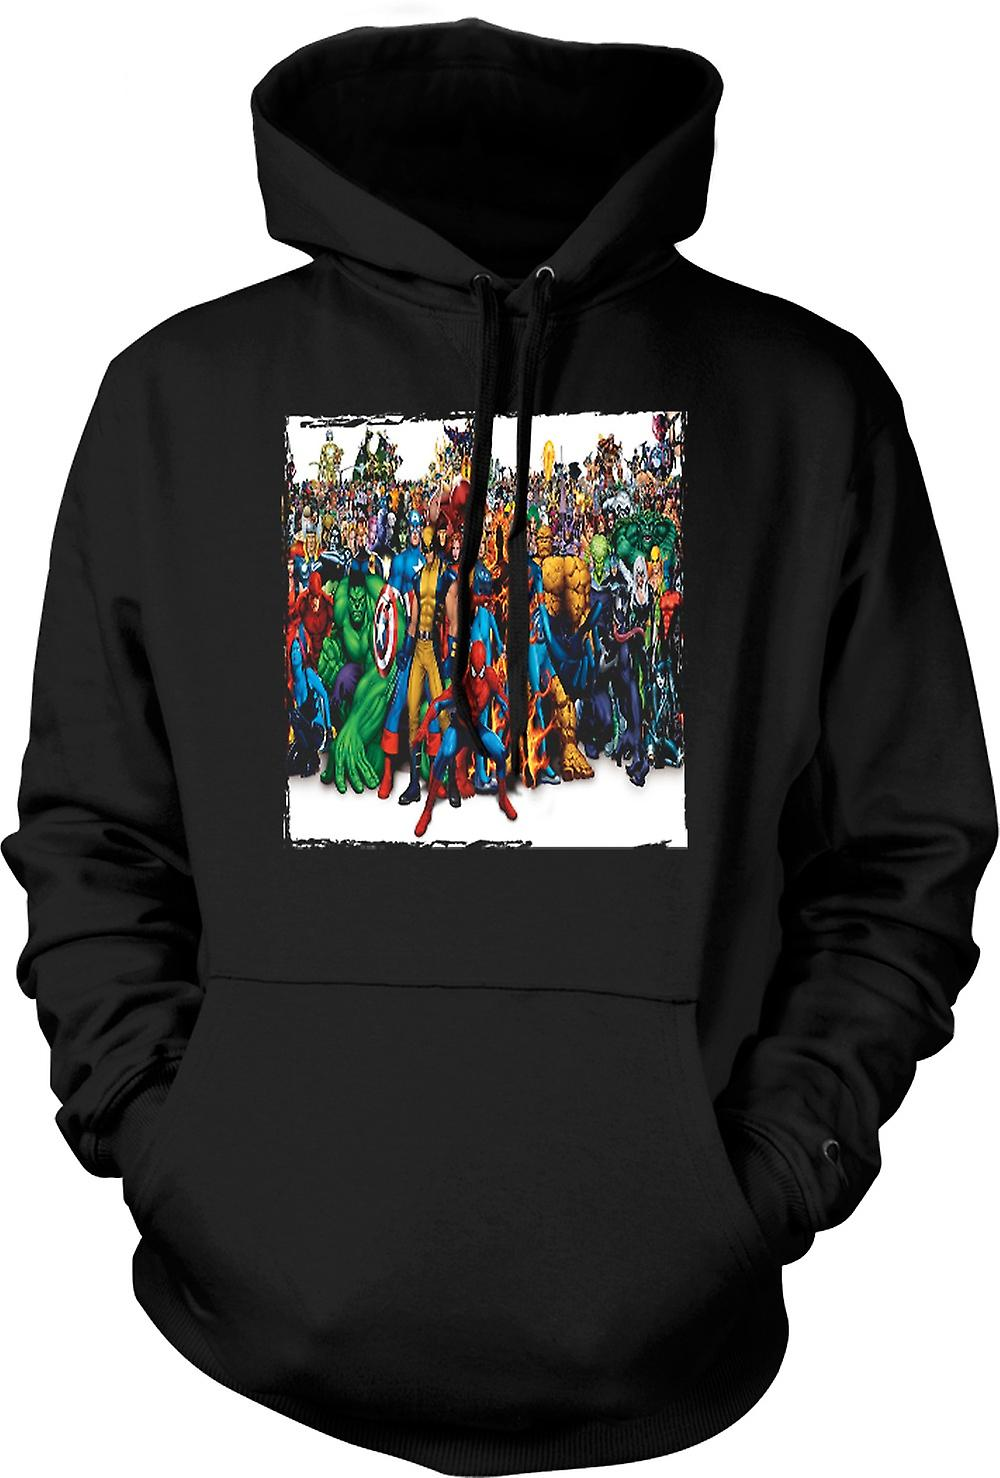 Kids Hoodie - Marvel Comic Hero Group - Portait